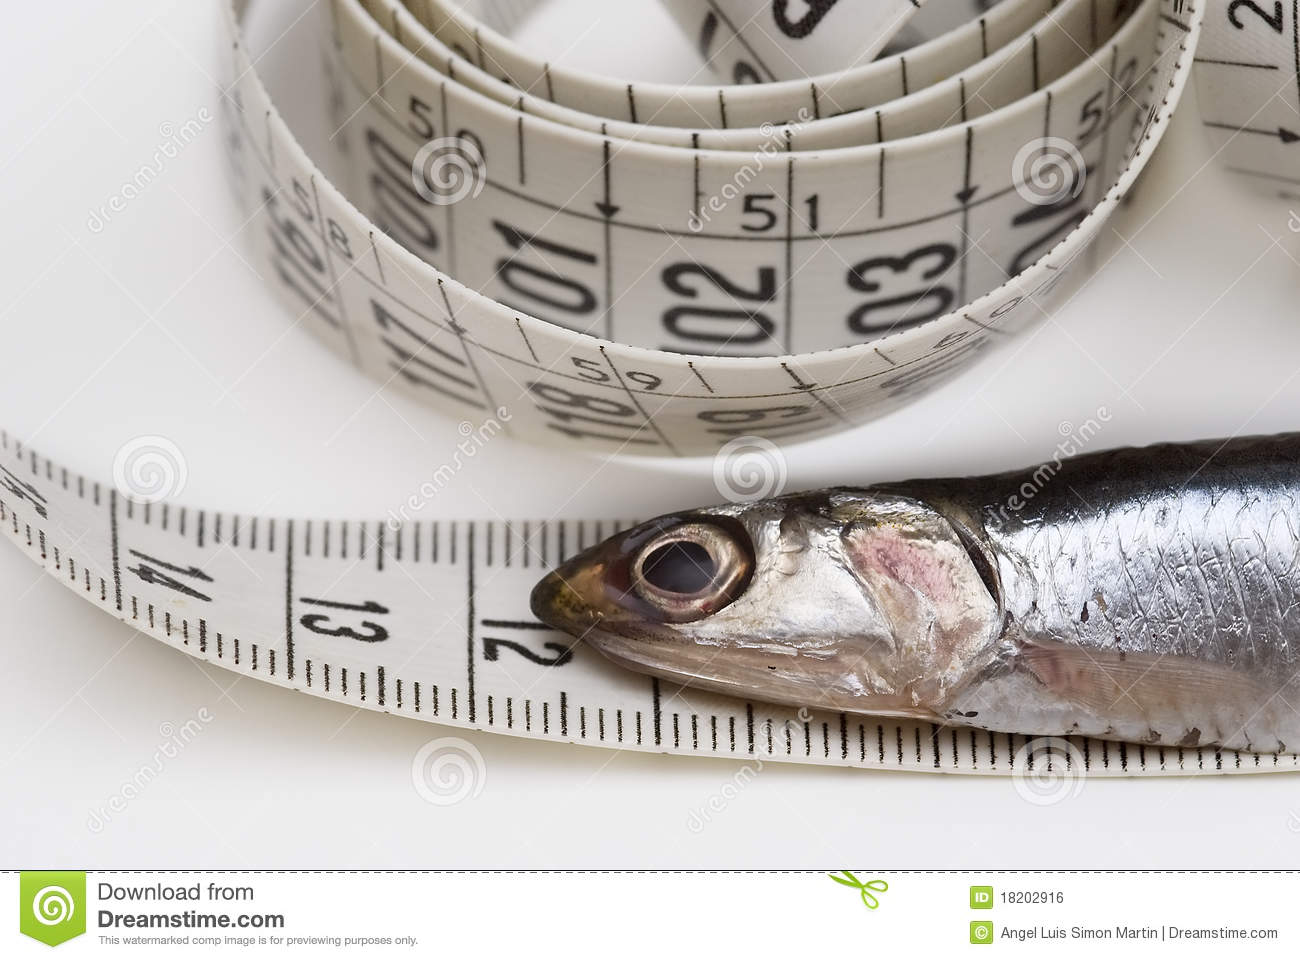 Measuring tape and fish royalty free stock image image for Fish measuring tape